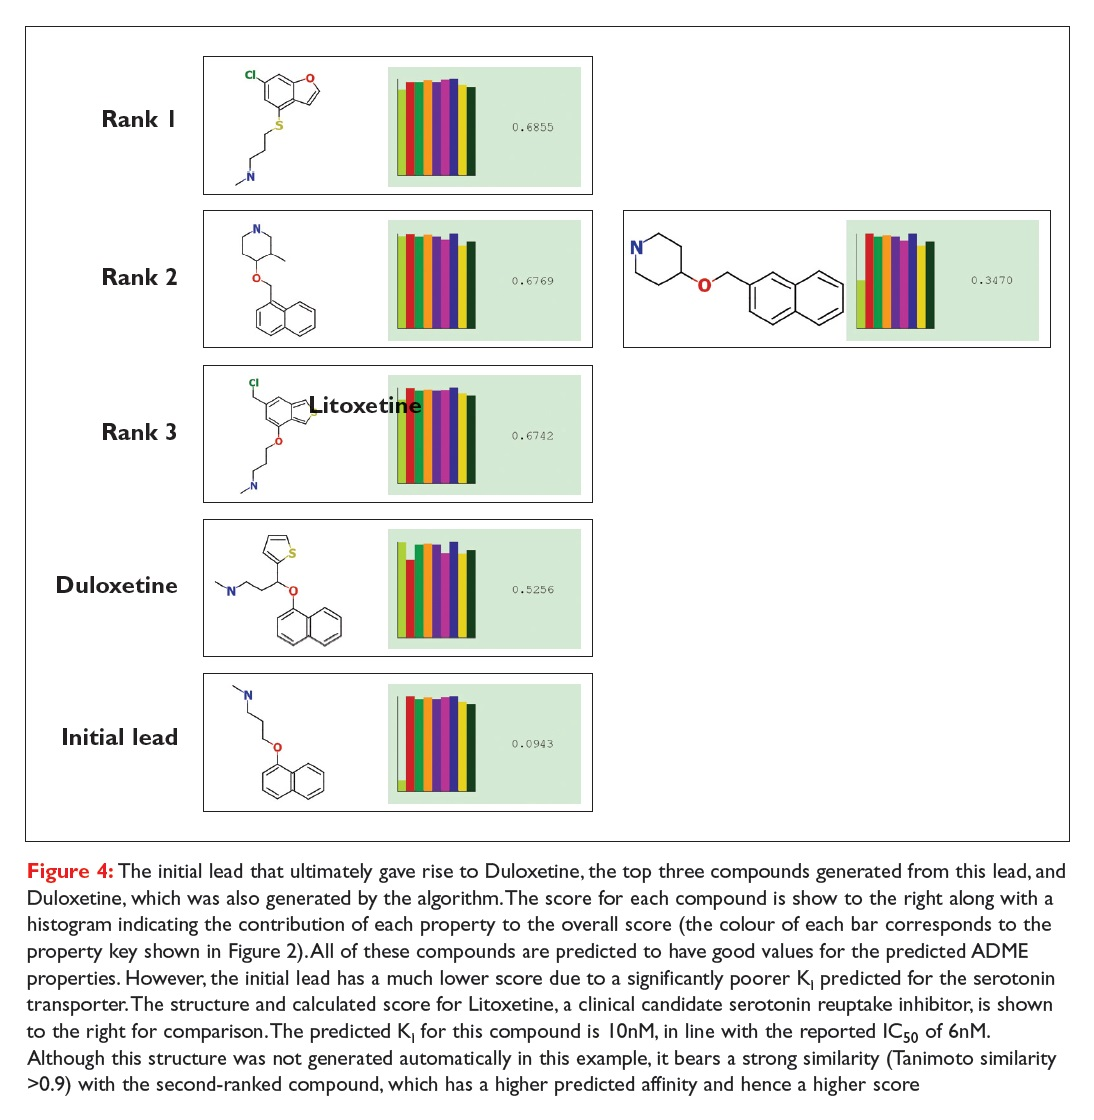 Figure 4 The initial lead that ultimately gave rise to Duloxetine, compounds diagrams